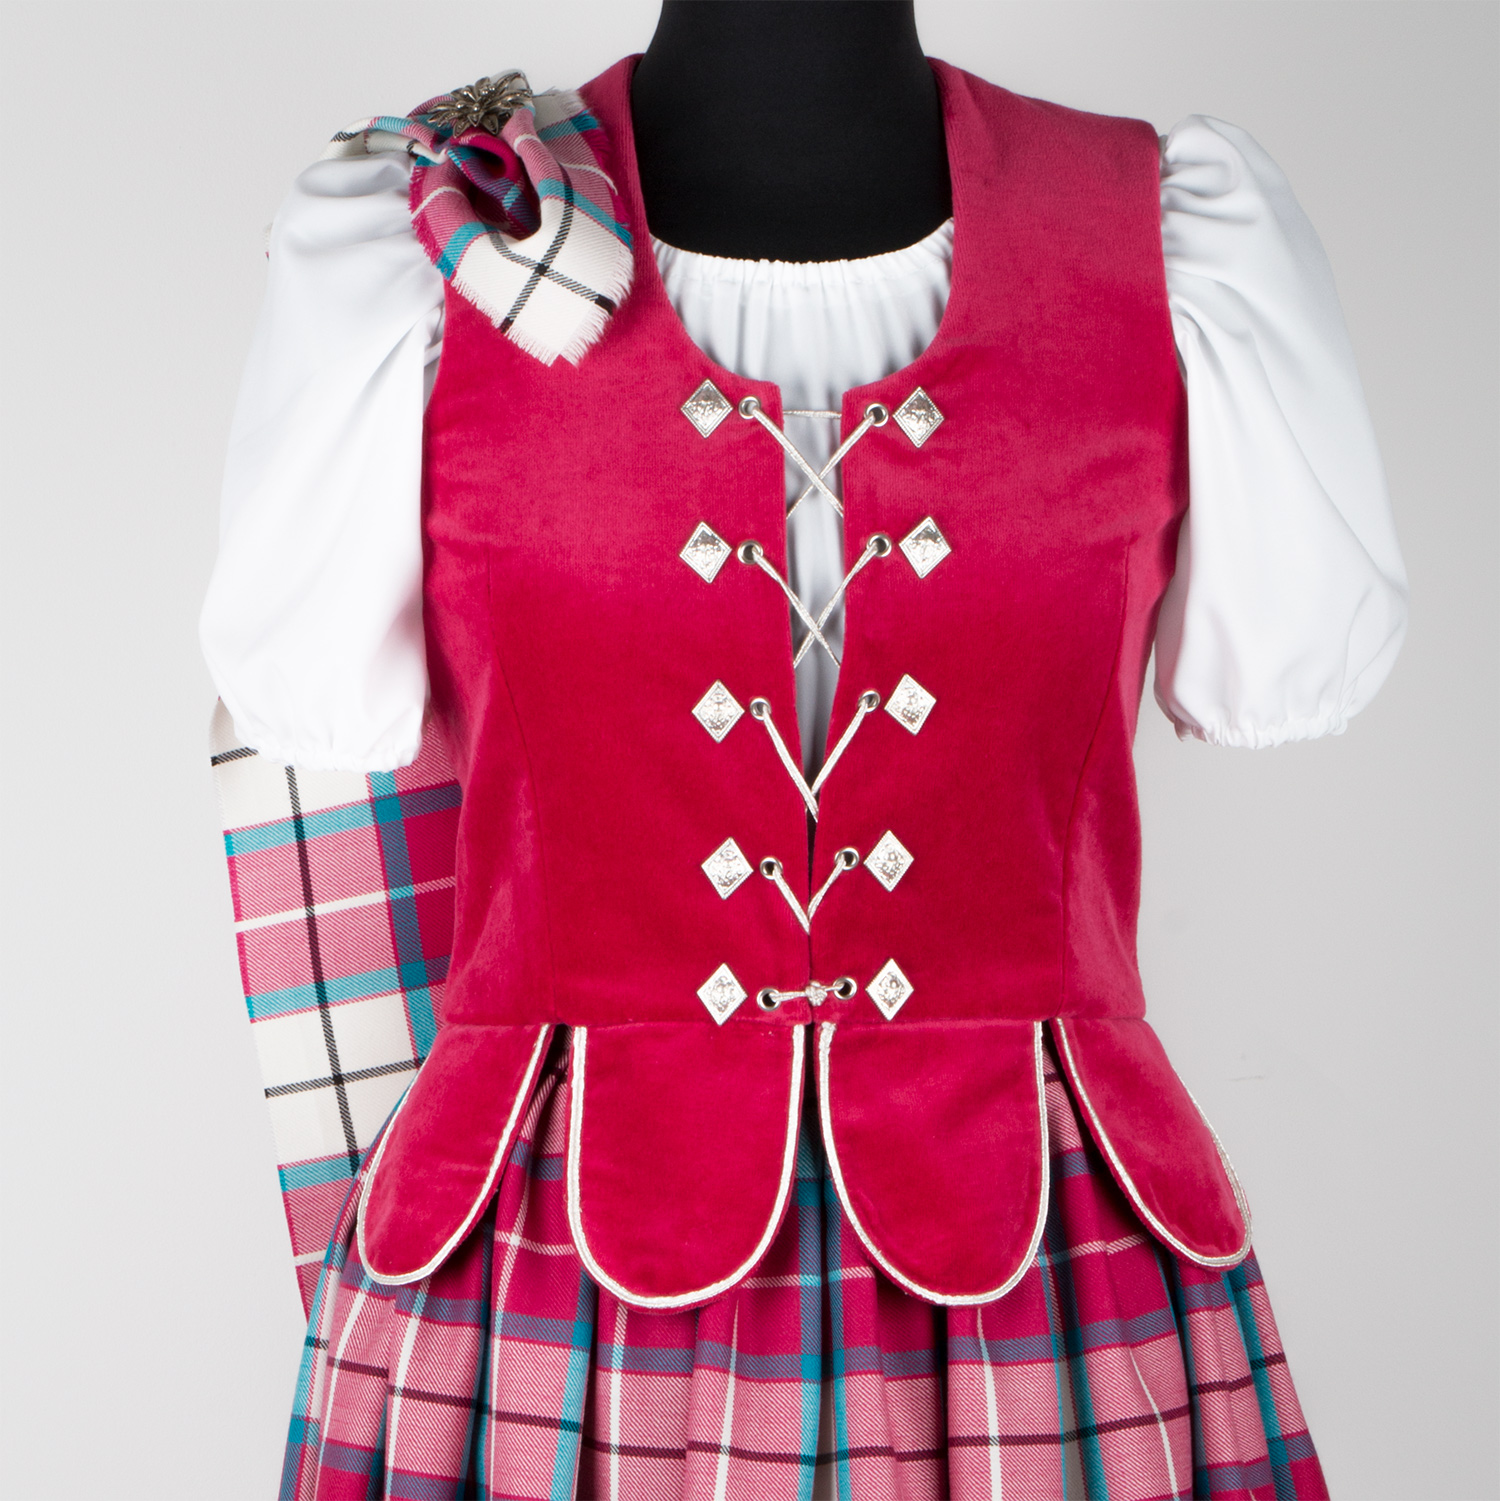 National Aboyne Vest shown in Rose with petals